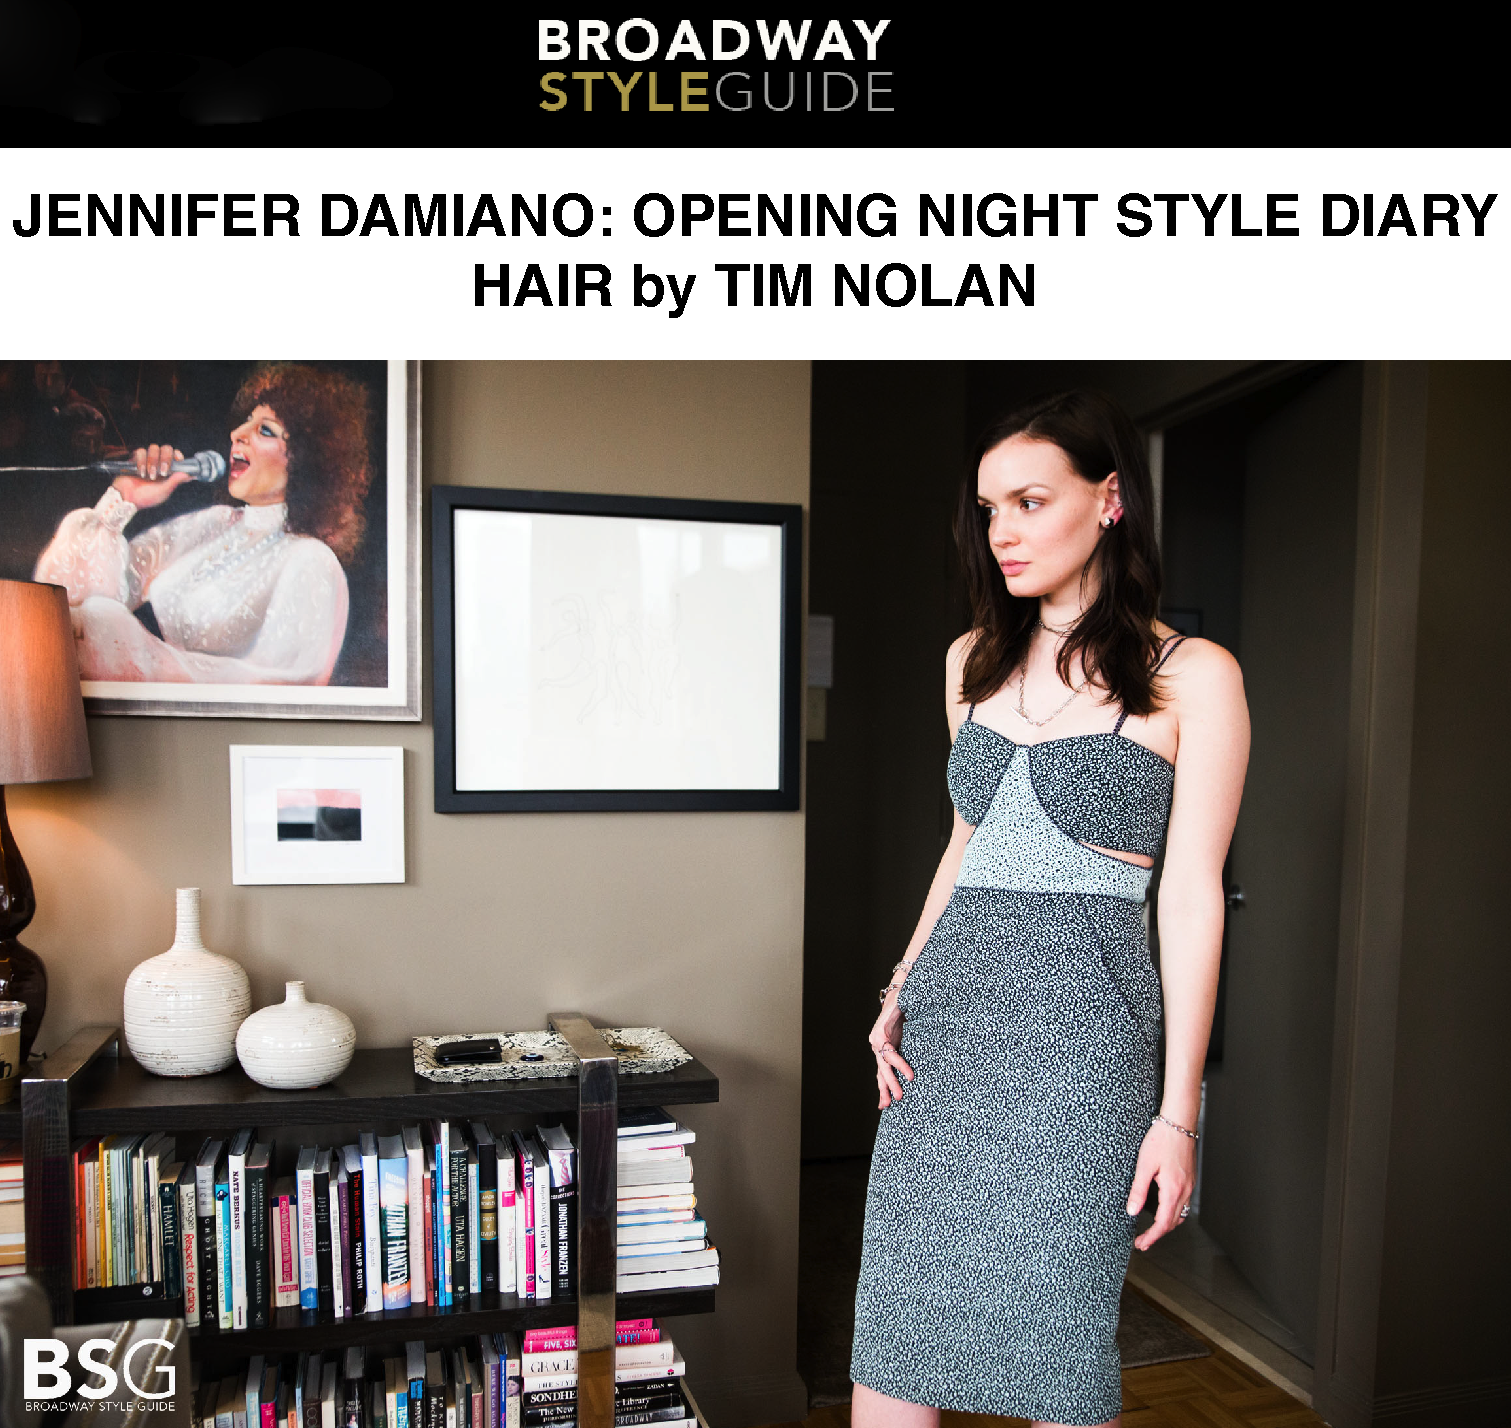 Broadway Style Guide